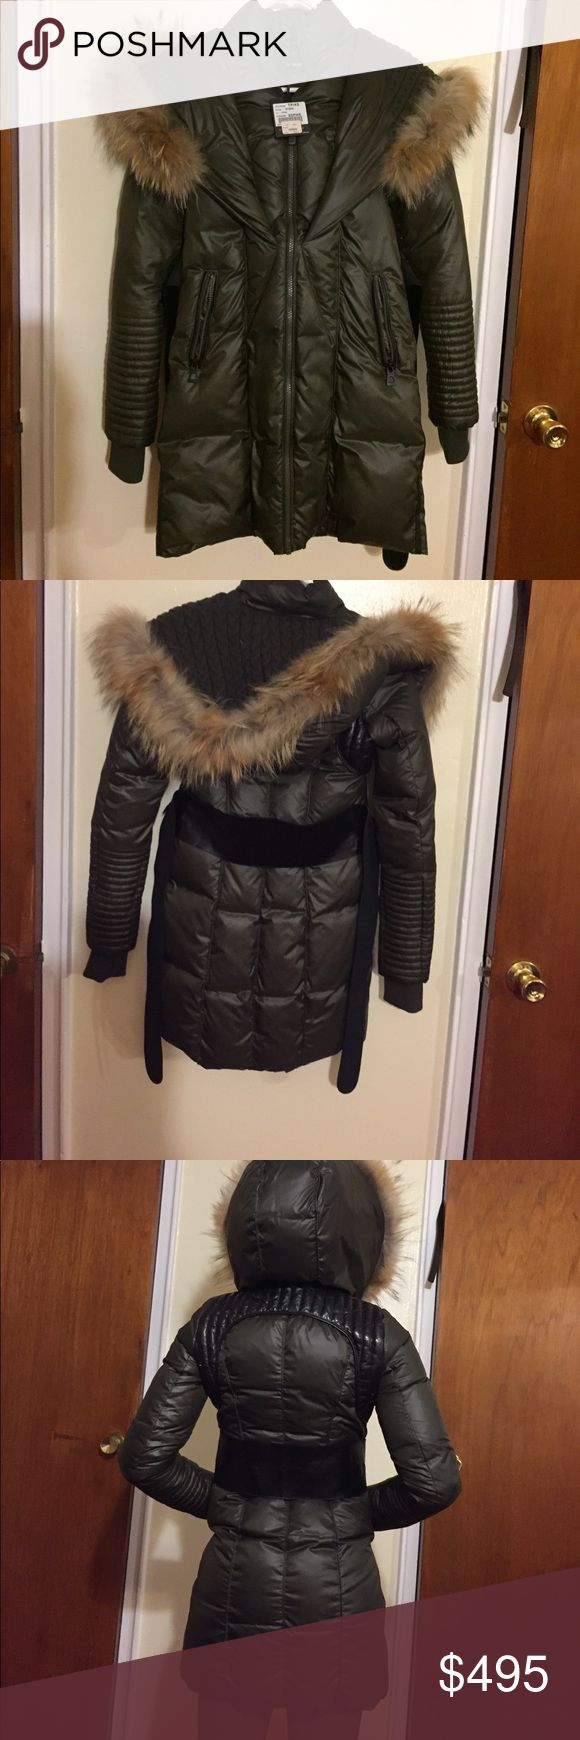 Winter Jacket Brand New Rudsak winter jacket very warm. Detachable straps RUDSAK Jackets & Coats Puffers